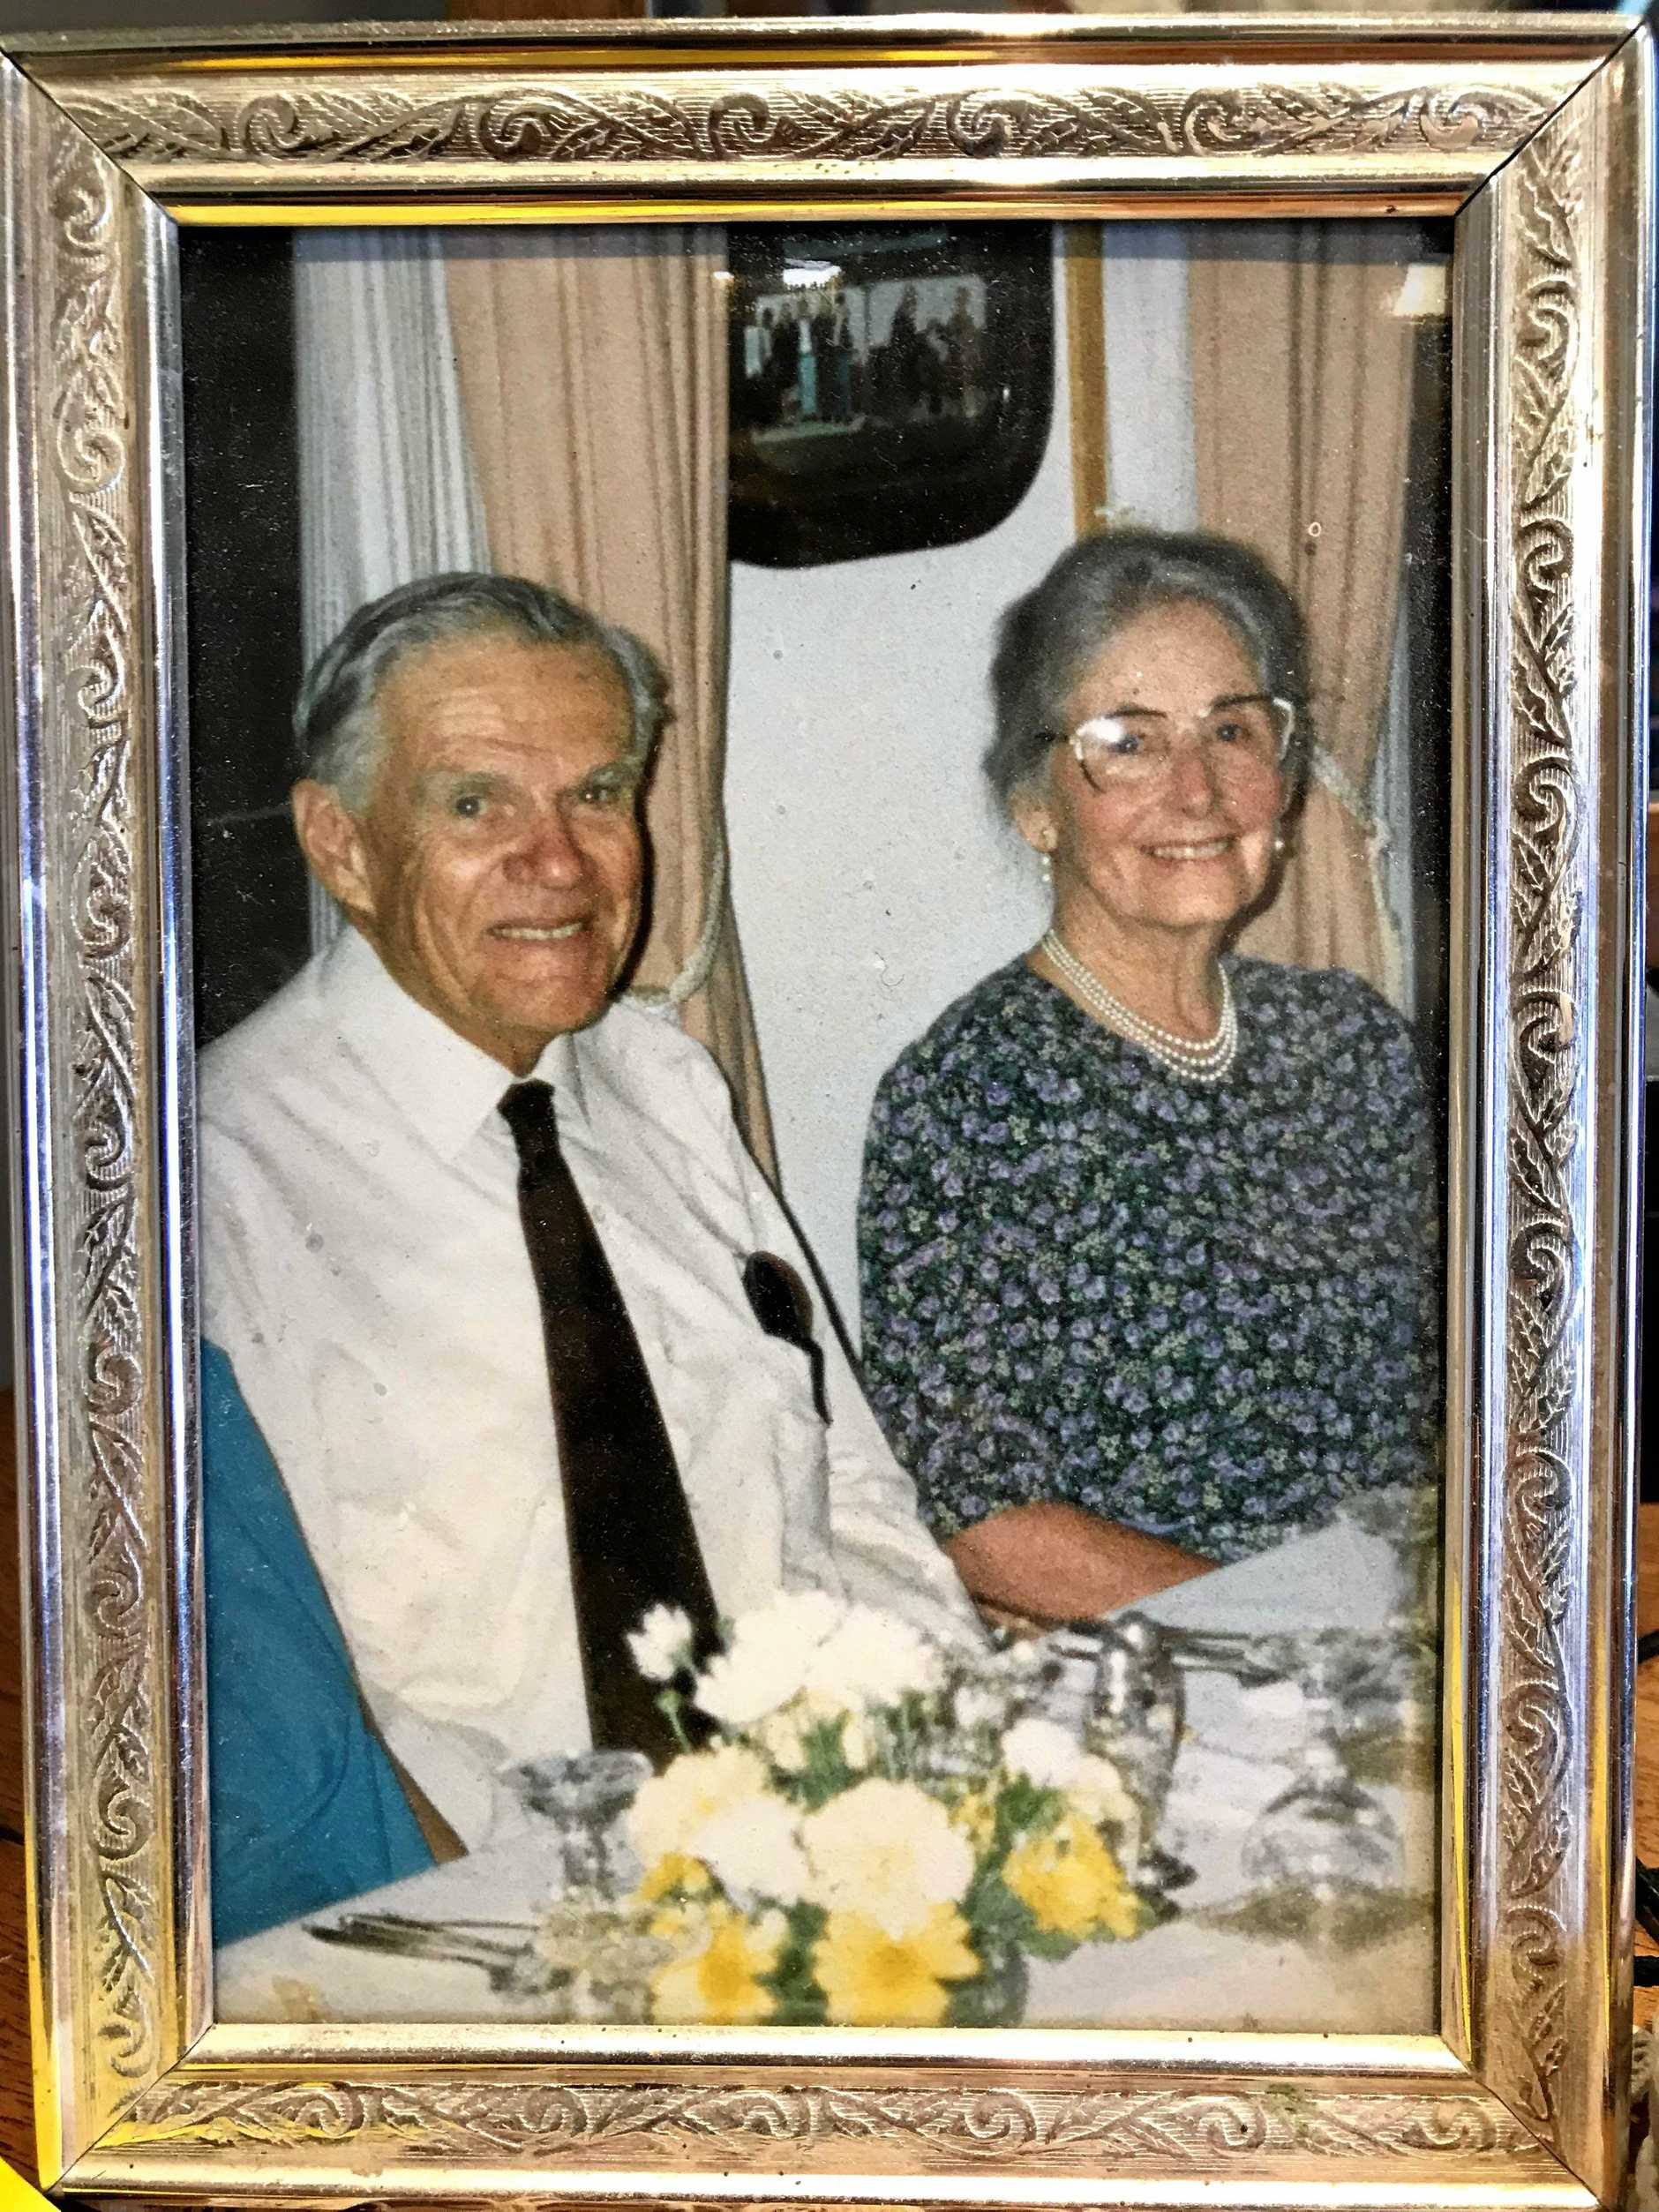 Warwick couple John and Avon Hayes took over Granite Hills station when Avon's parents retired.